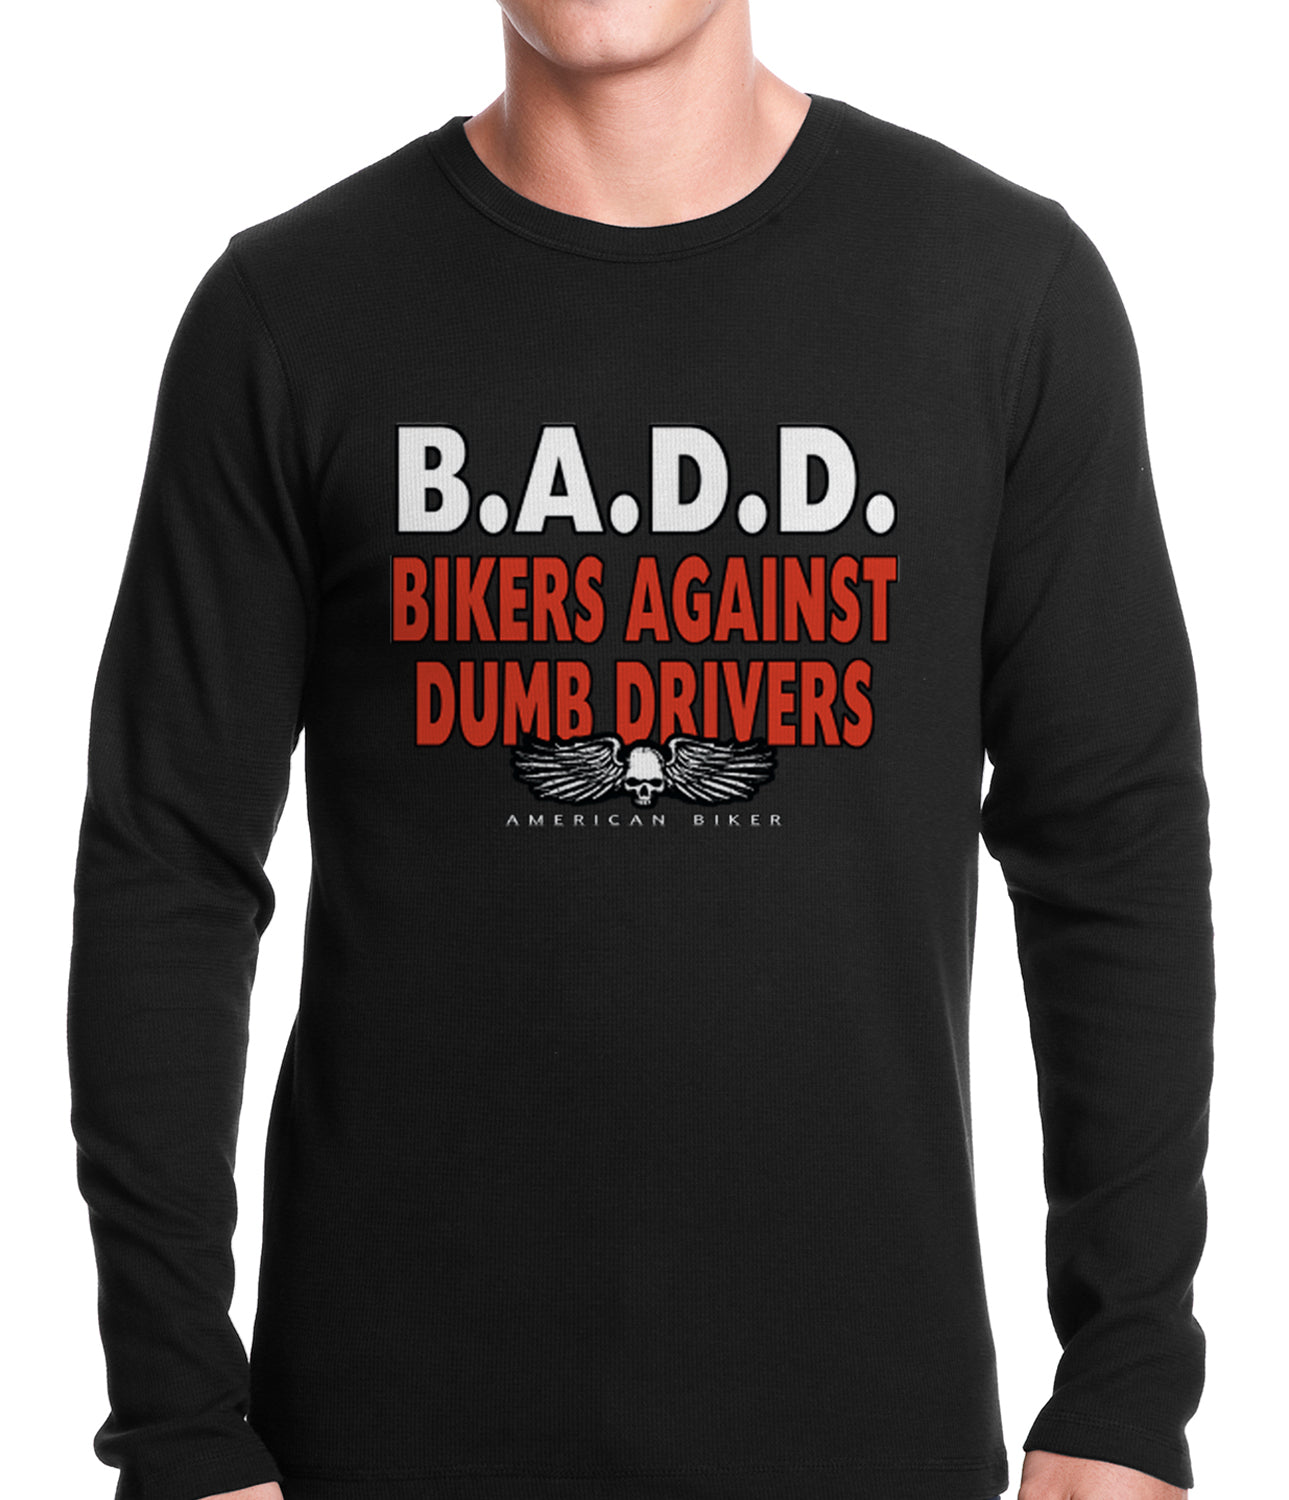 Bikers Against Dumb Drivers Thermal Shirt